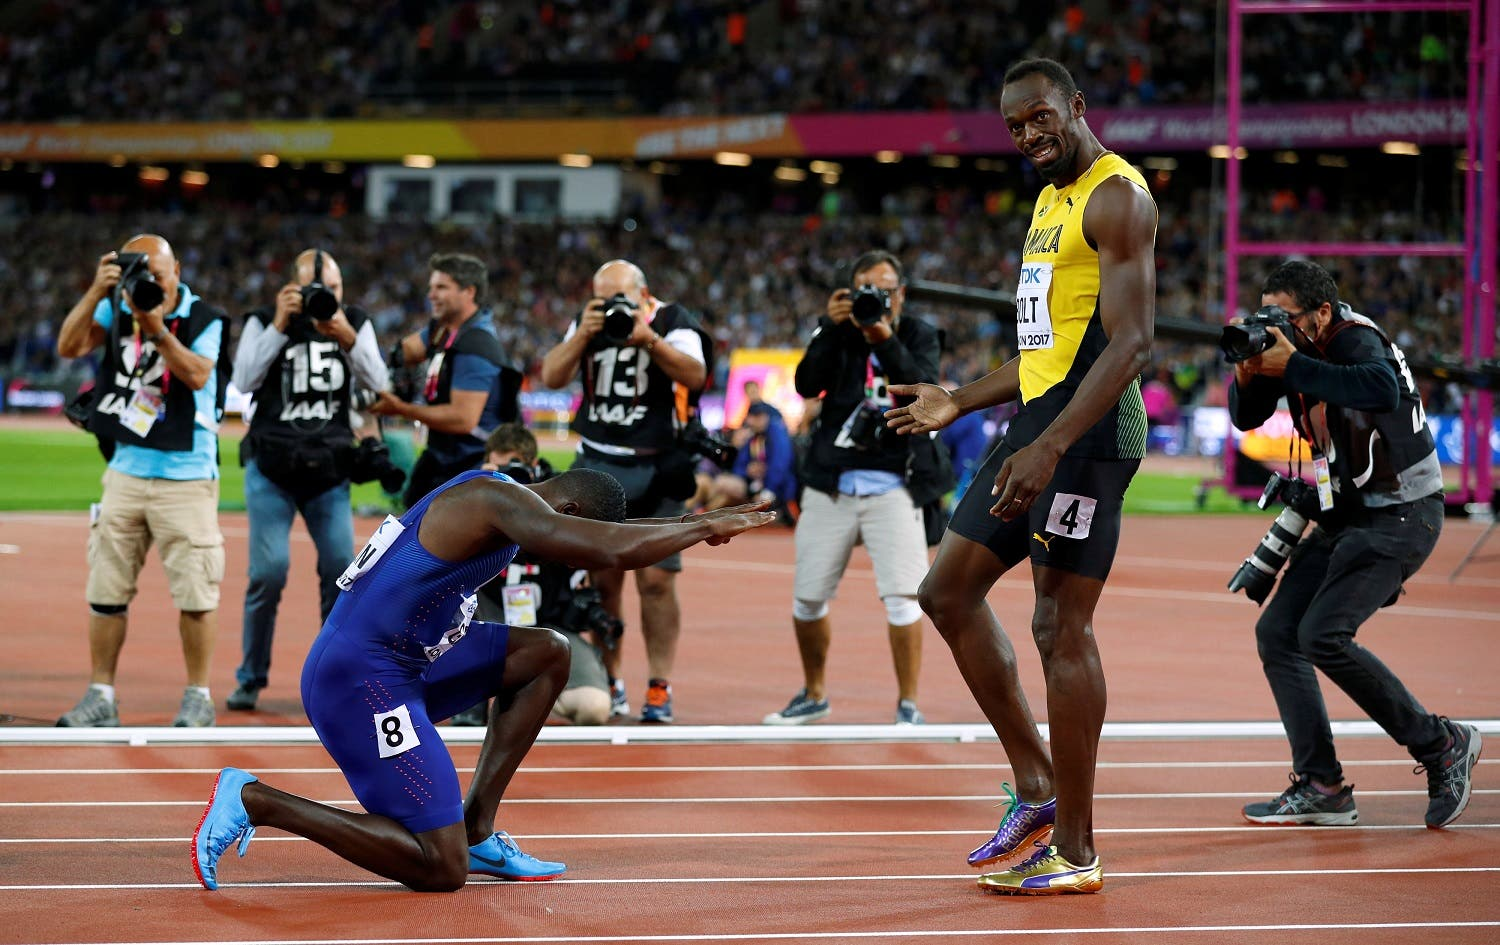 Usain Bolt of Jamaica with Justin Gatlin of the US after the final in World Athletics Championships Men's 100 meters final in London on August 5, 2017. (Reuters)